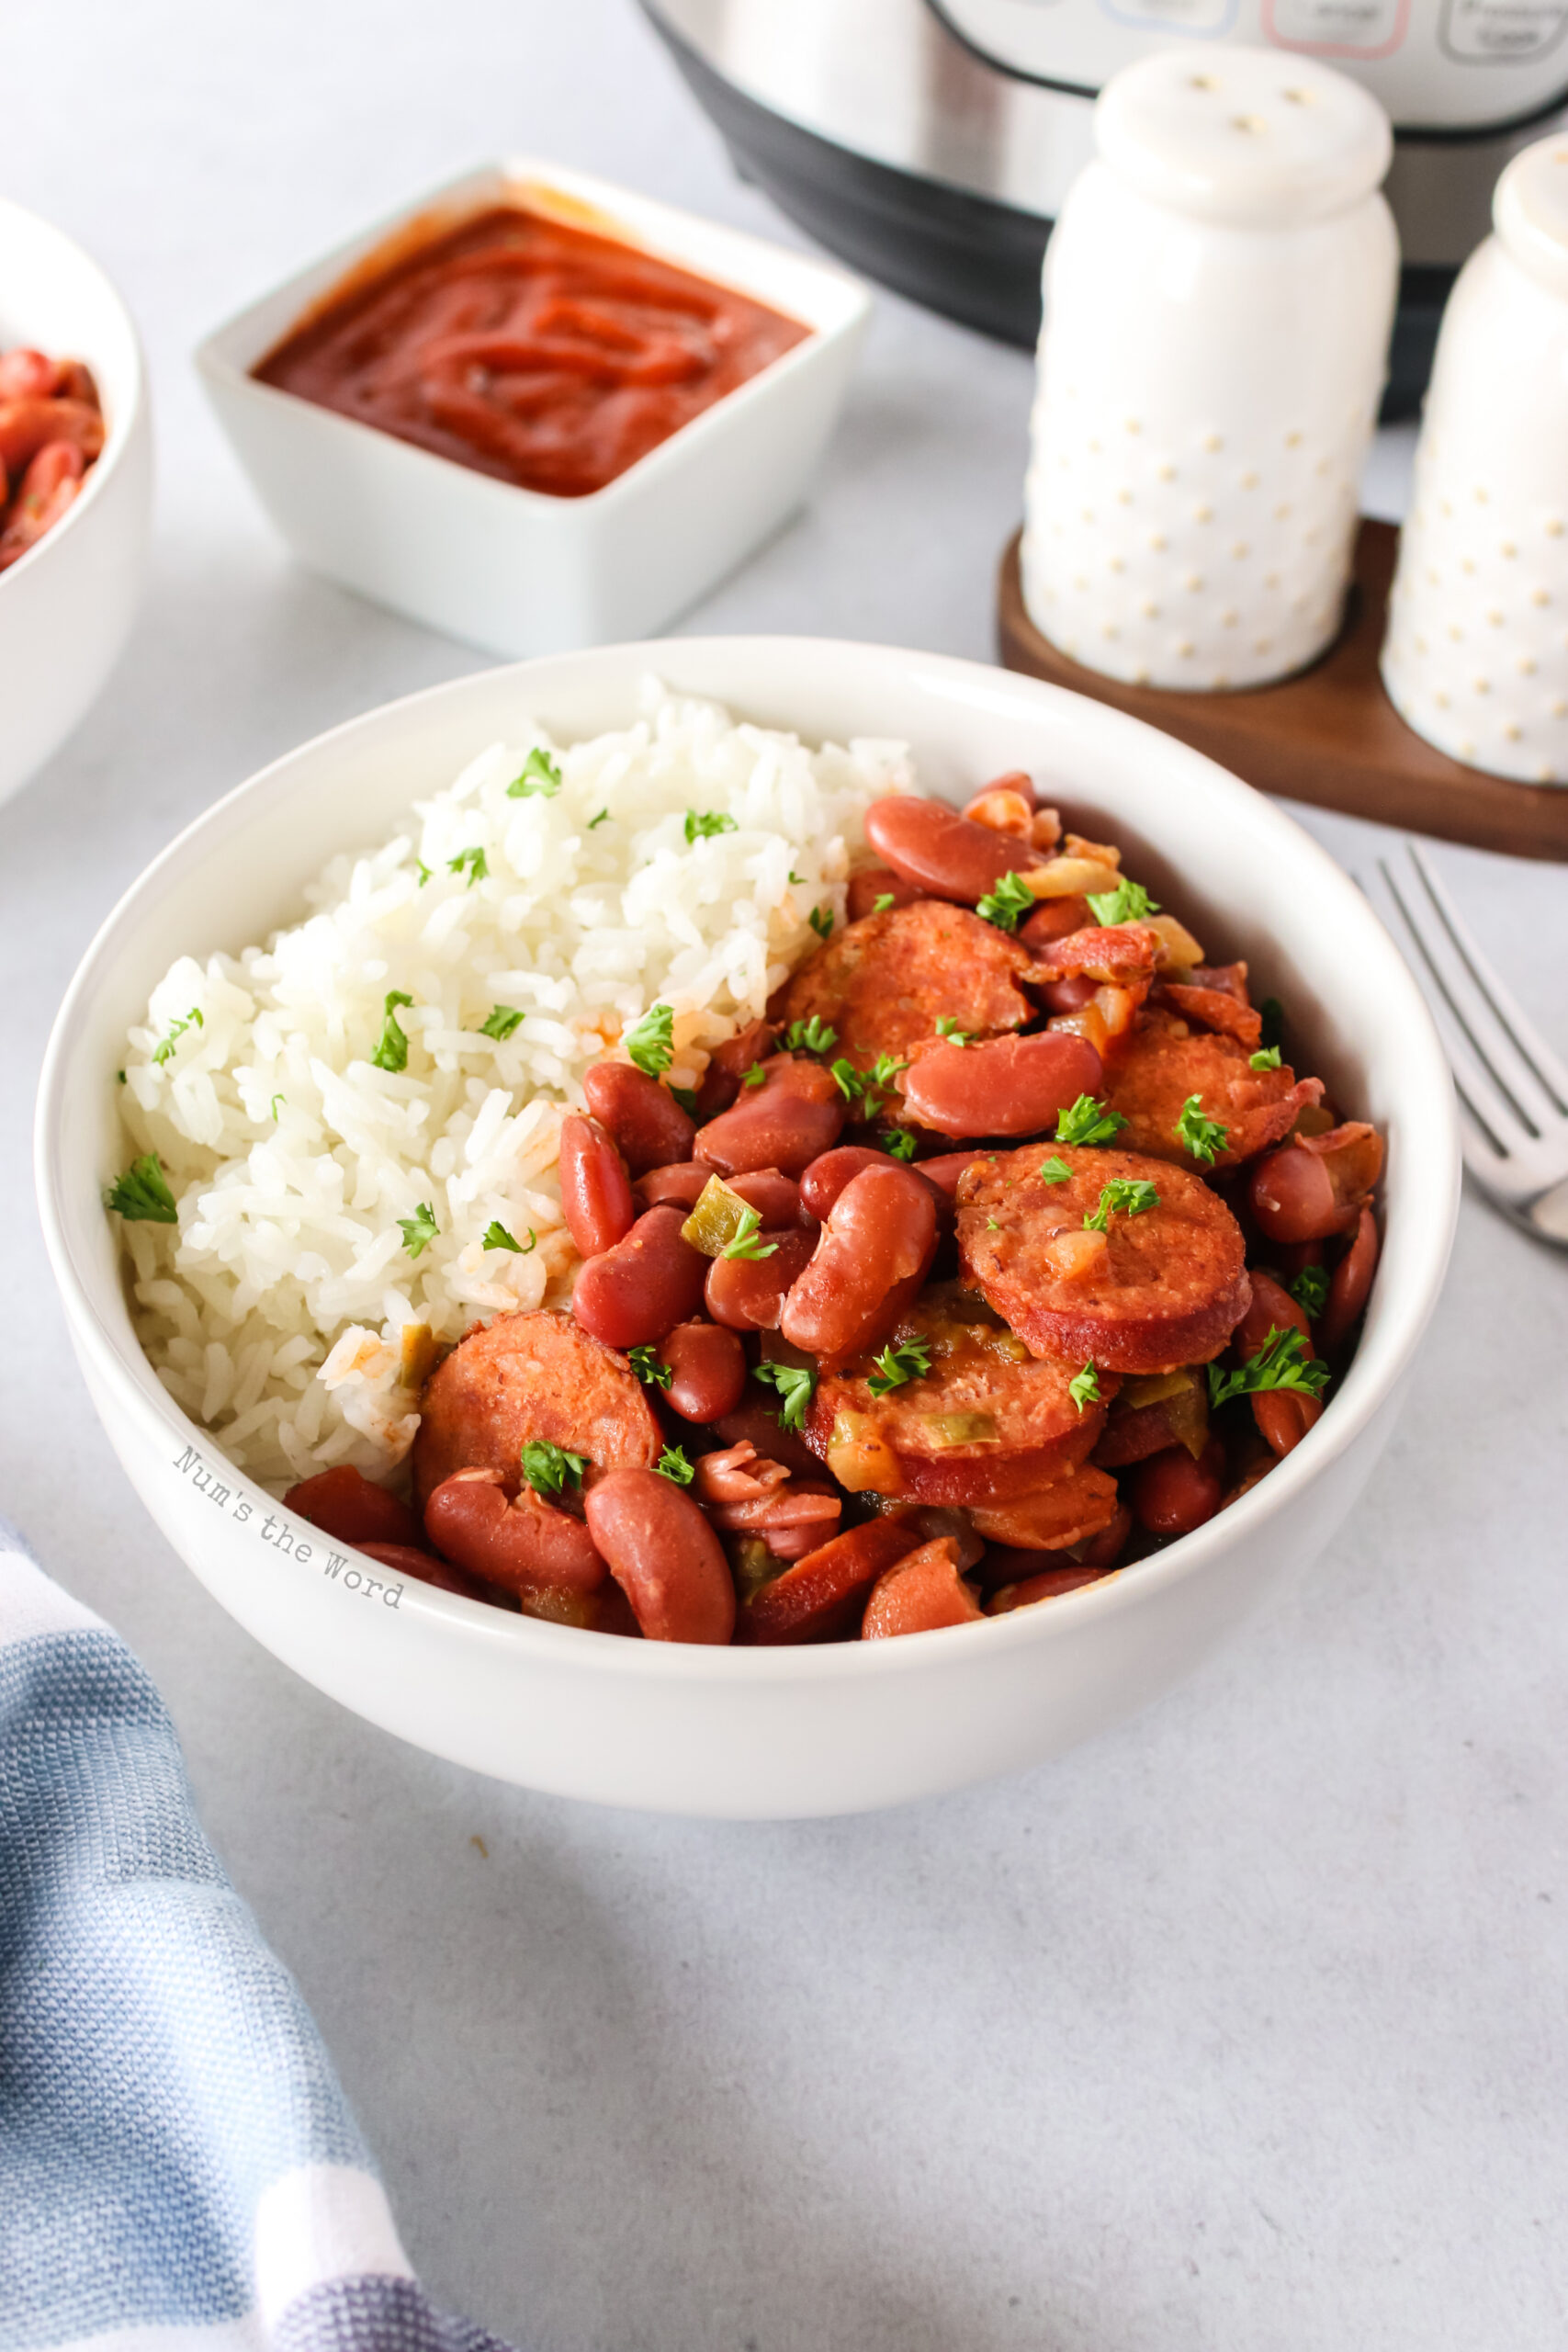 side view of red beans and rice in a bowl